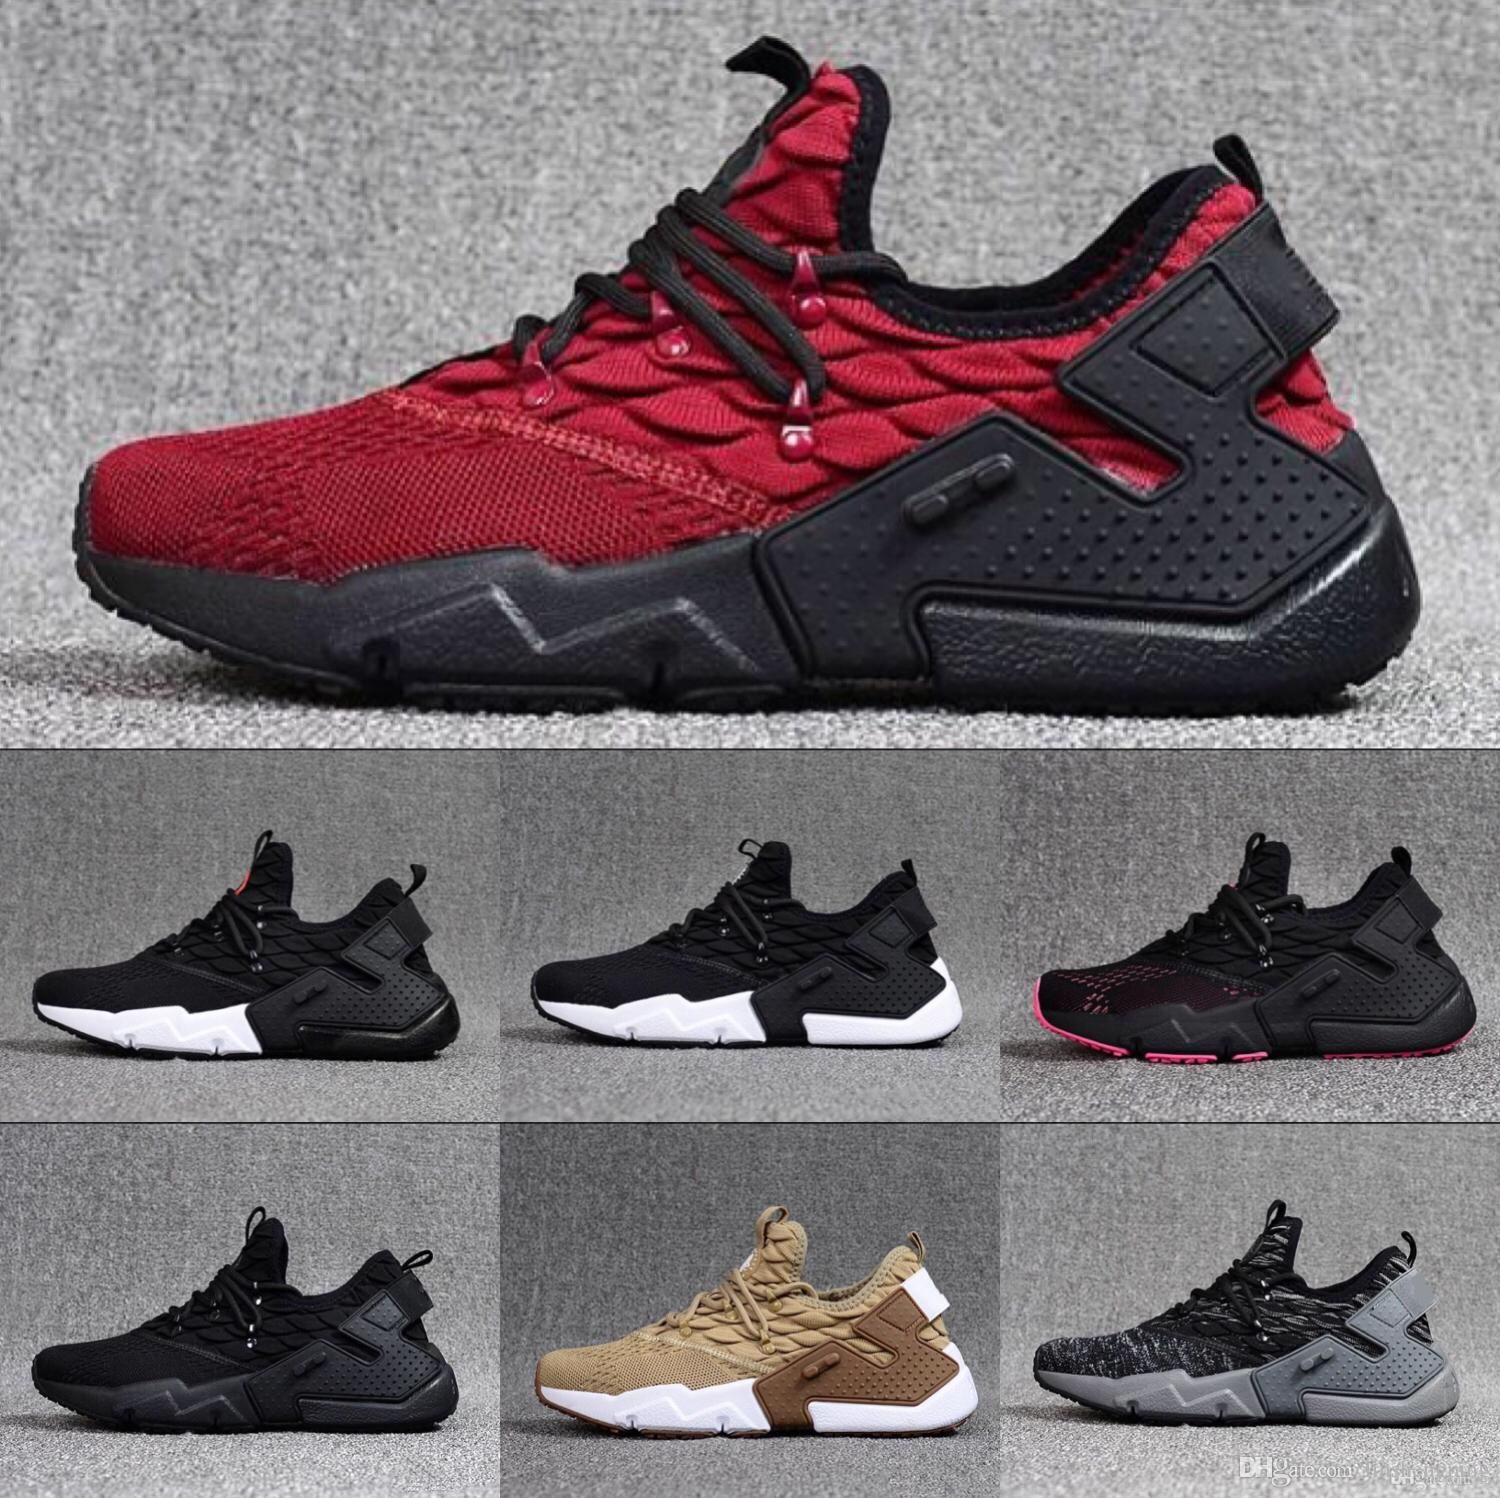 2018 Hot Huarache 6 Drift PRPRM Sneakers Ultra Sports Shoes Hurache 6s Running Shoes for Mens Women Huraches Sports Training Sneakers outlet good selling finishline online dmJJs8v